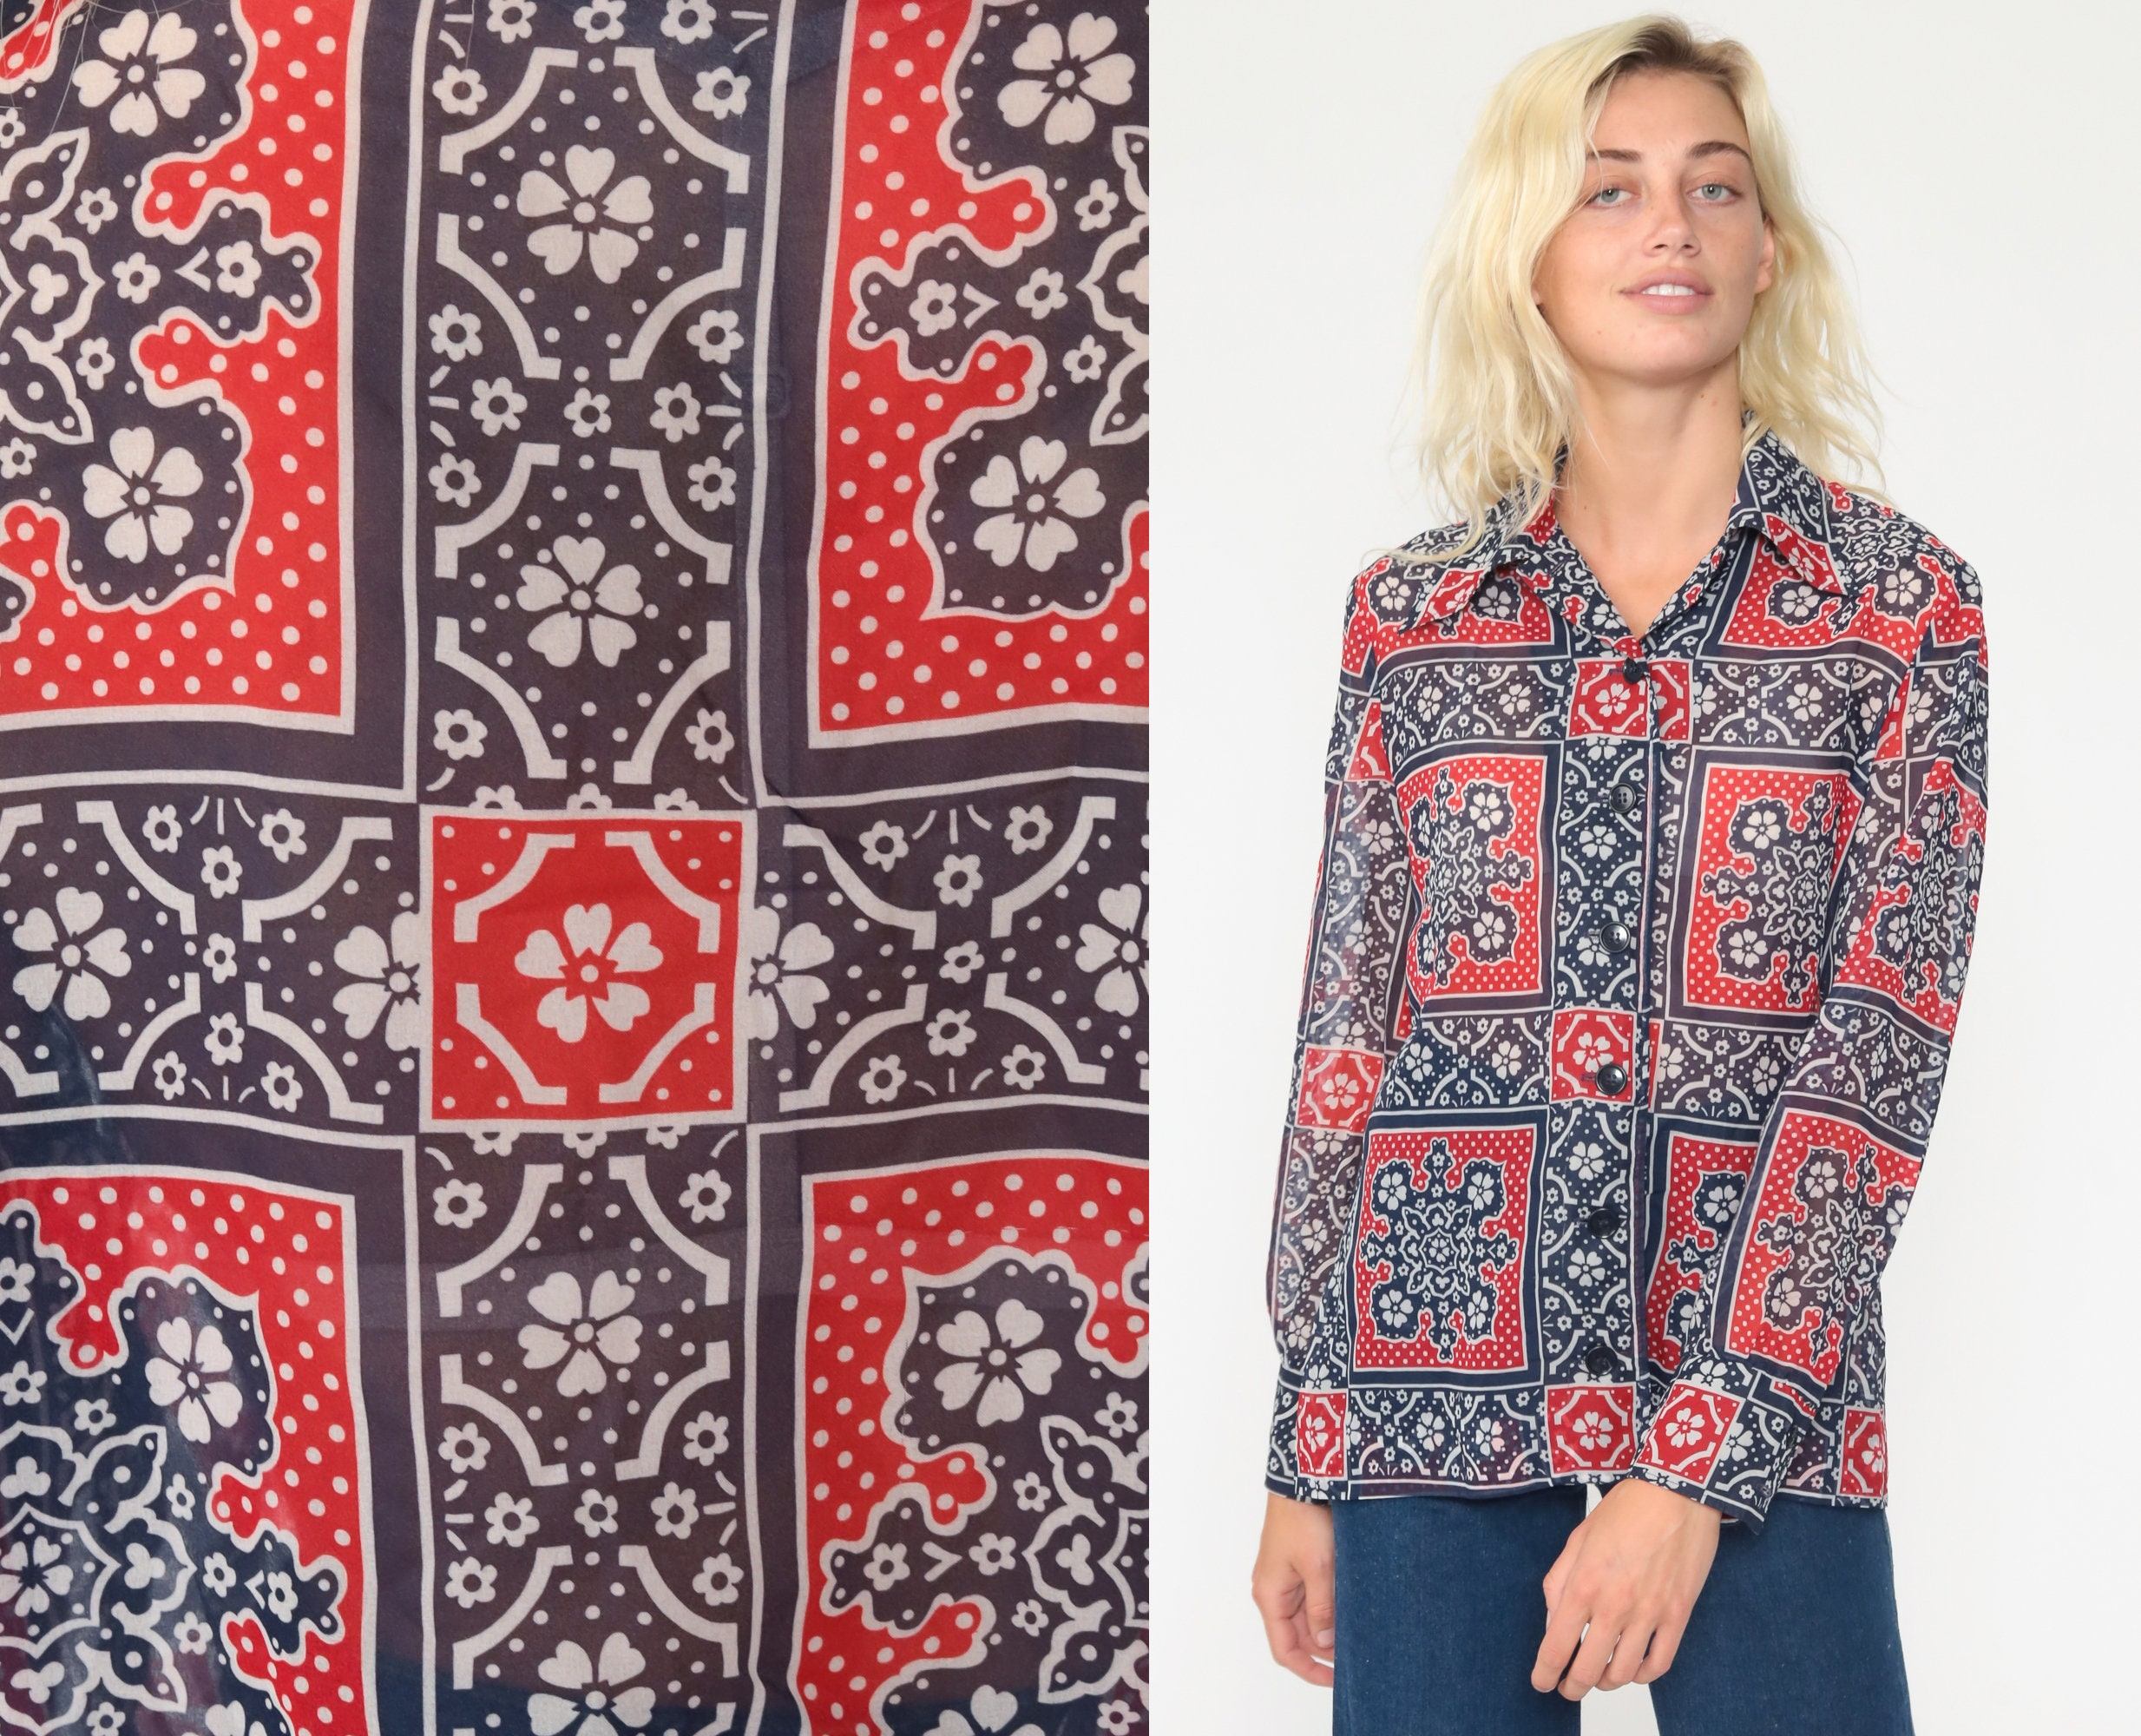 Vintage Scarf Styles -1920s to 1960s Boho Hanky Blouse 70S Button Up Shirt Floral Graphic Blue Bohemian 1970S Top Long Sleeve Vintage Retro Collar Scarf Medium $39.00 AT vintagedancer.com